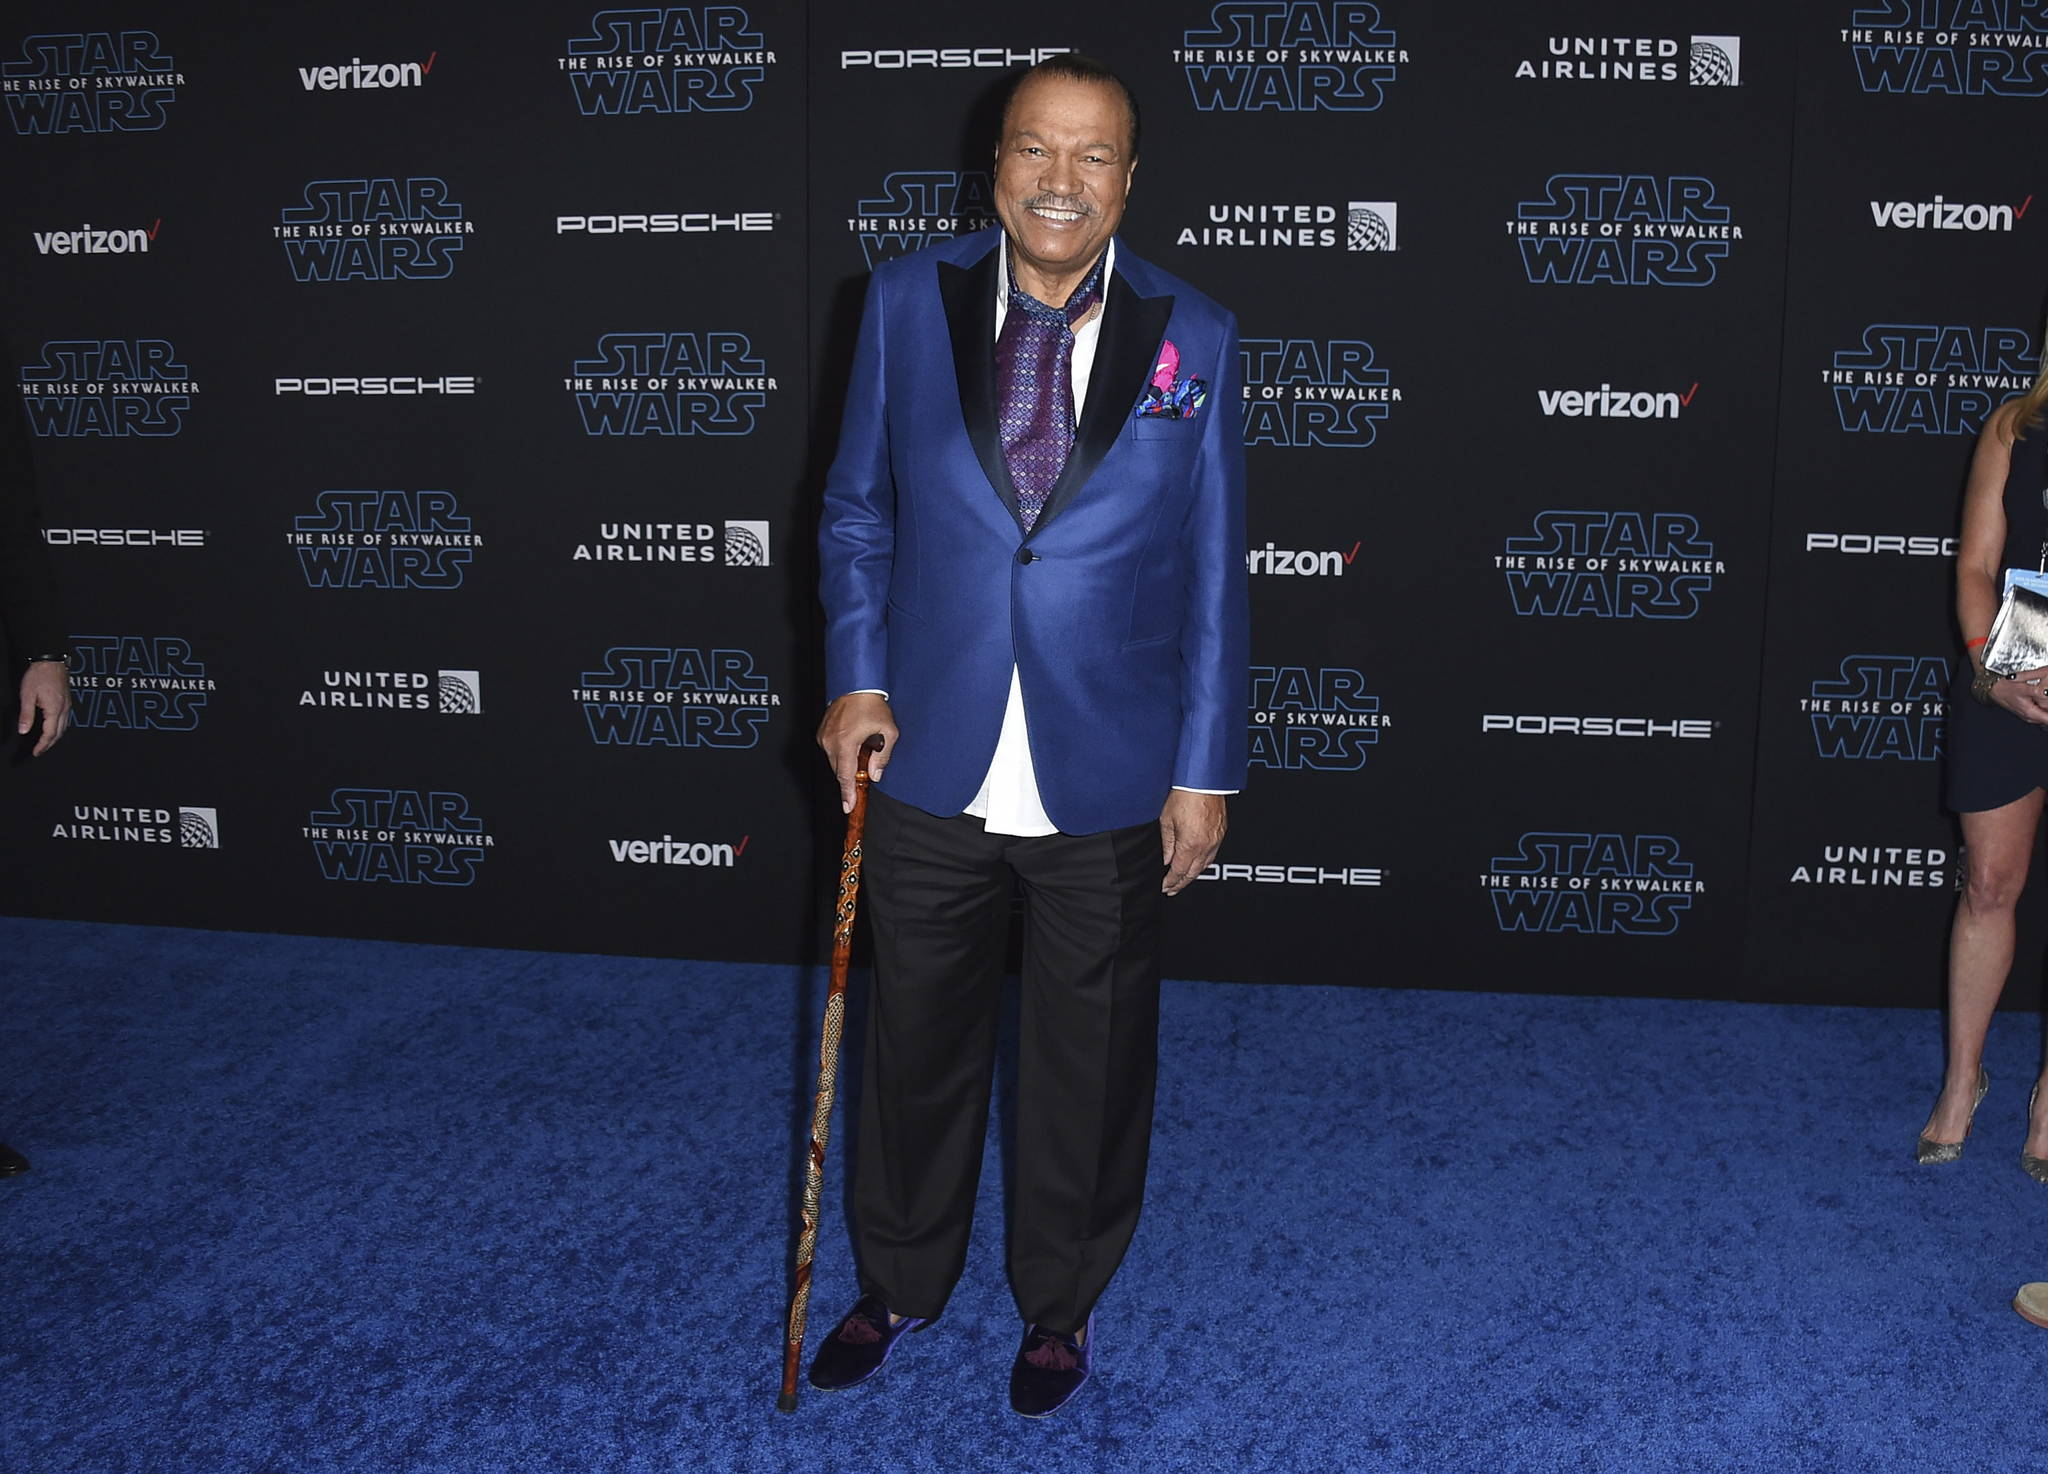 """Billy Dee Williams arrives at the world premiere of """"Star Wars: The Rise of Skywalker"""" on Monday, Dec. 16, 2019, in Los Angeles (Jordan Strauss/Invision/AP)"""